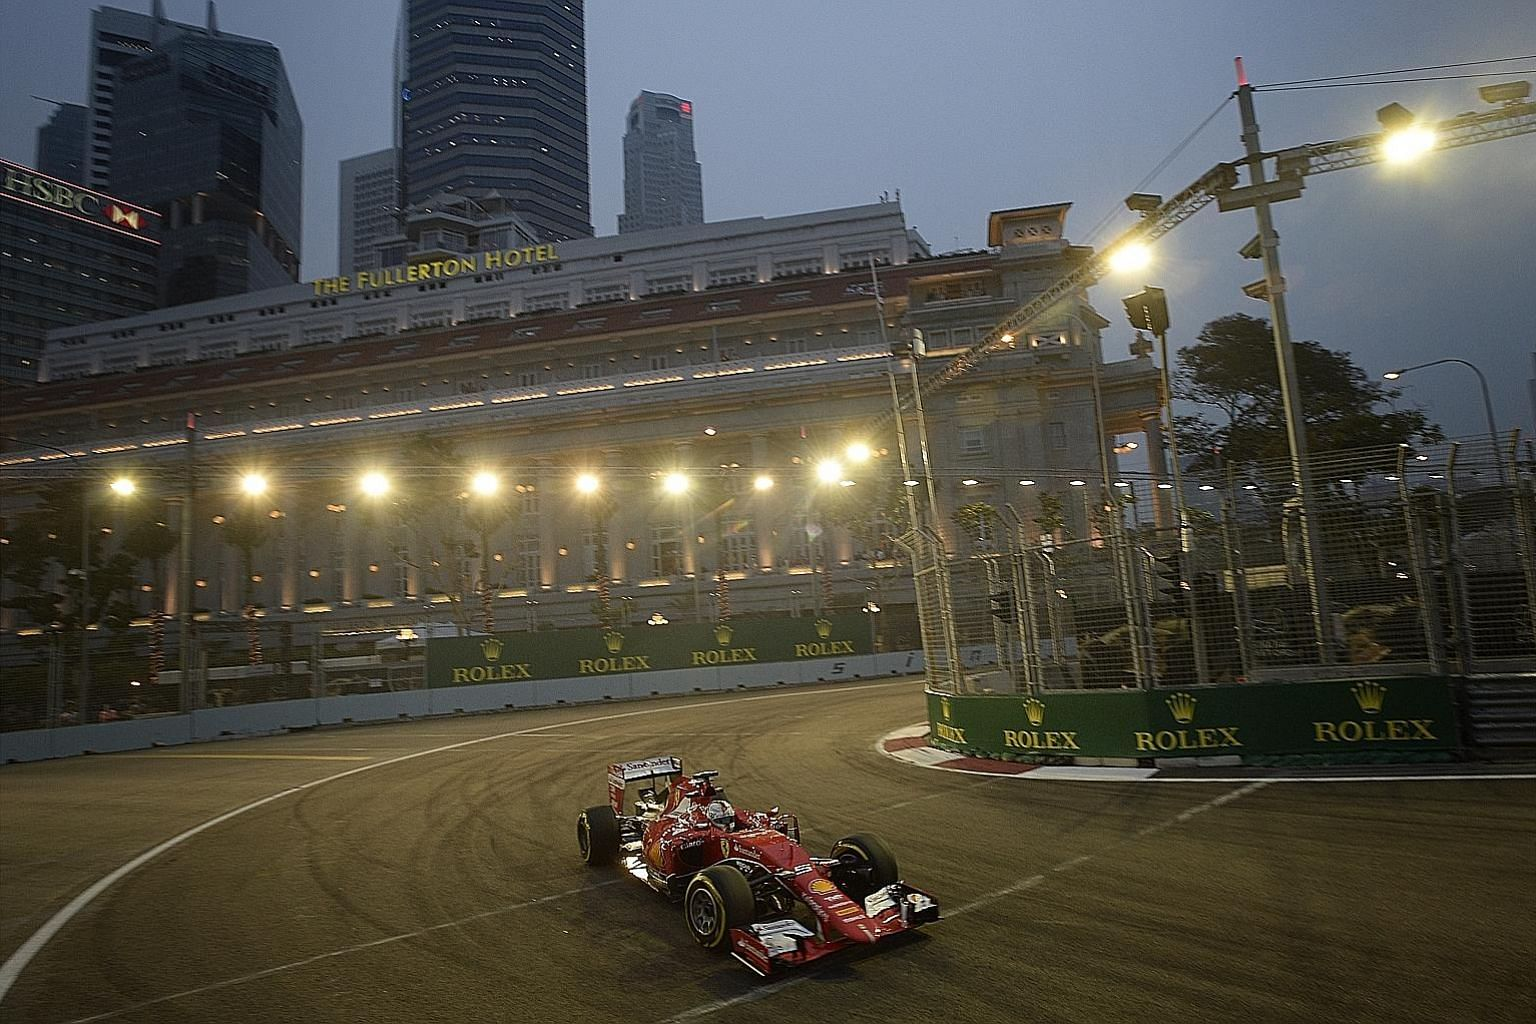 Cyclect Group, which has been the main electrical contractor for the Singapore Grand Prix since the first Formula One race in 2008, has six weeks to make its representations to the Competition Commission of Singapore before a final decision is made.